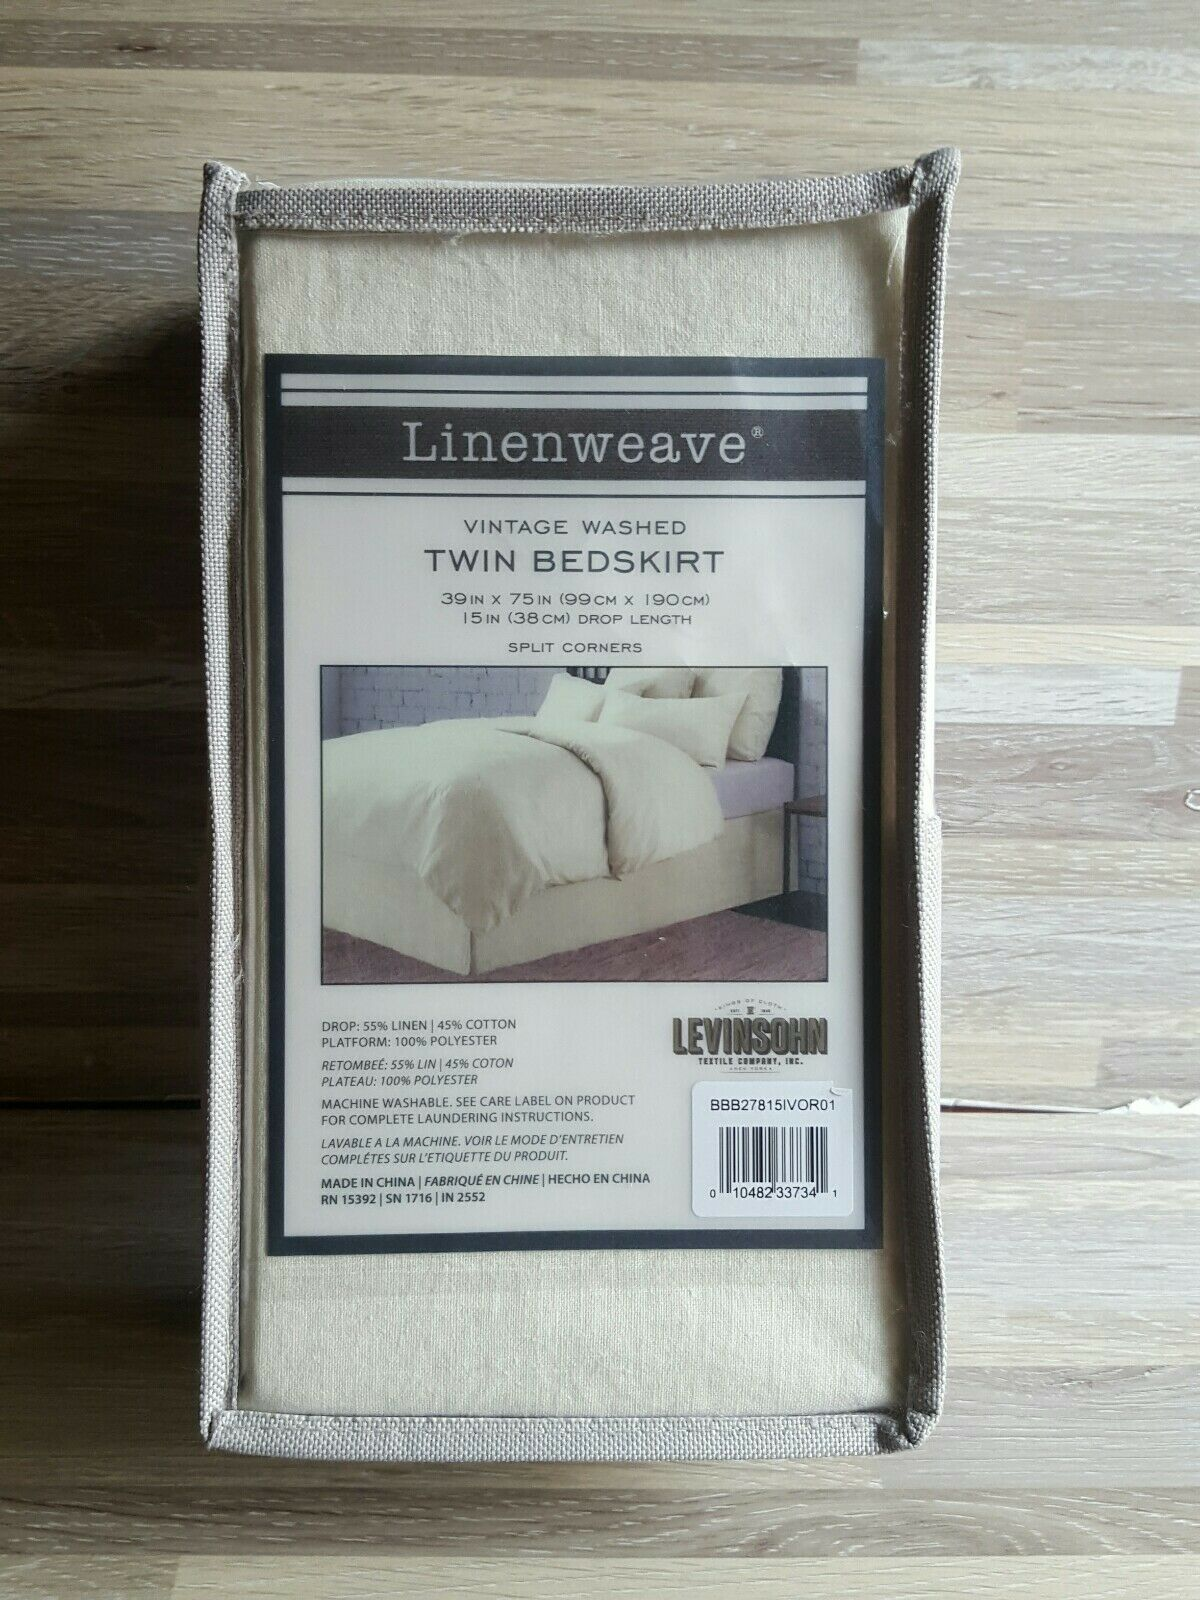 Linenweave Vintage Washed Full 15-Inch Drop Tailored Bedskirt In White